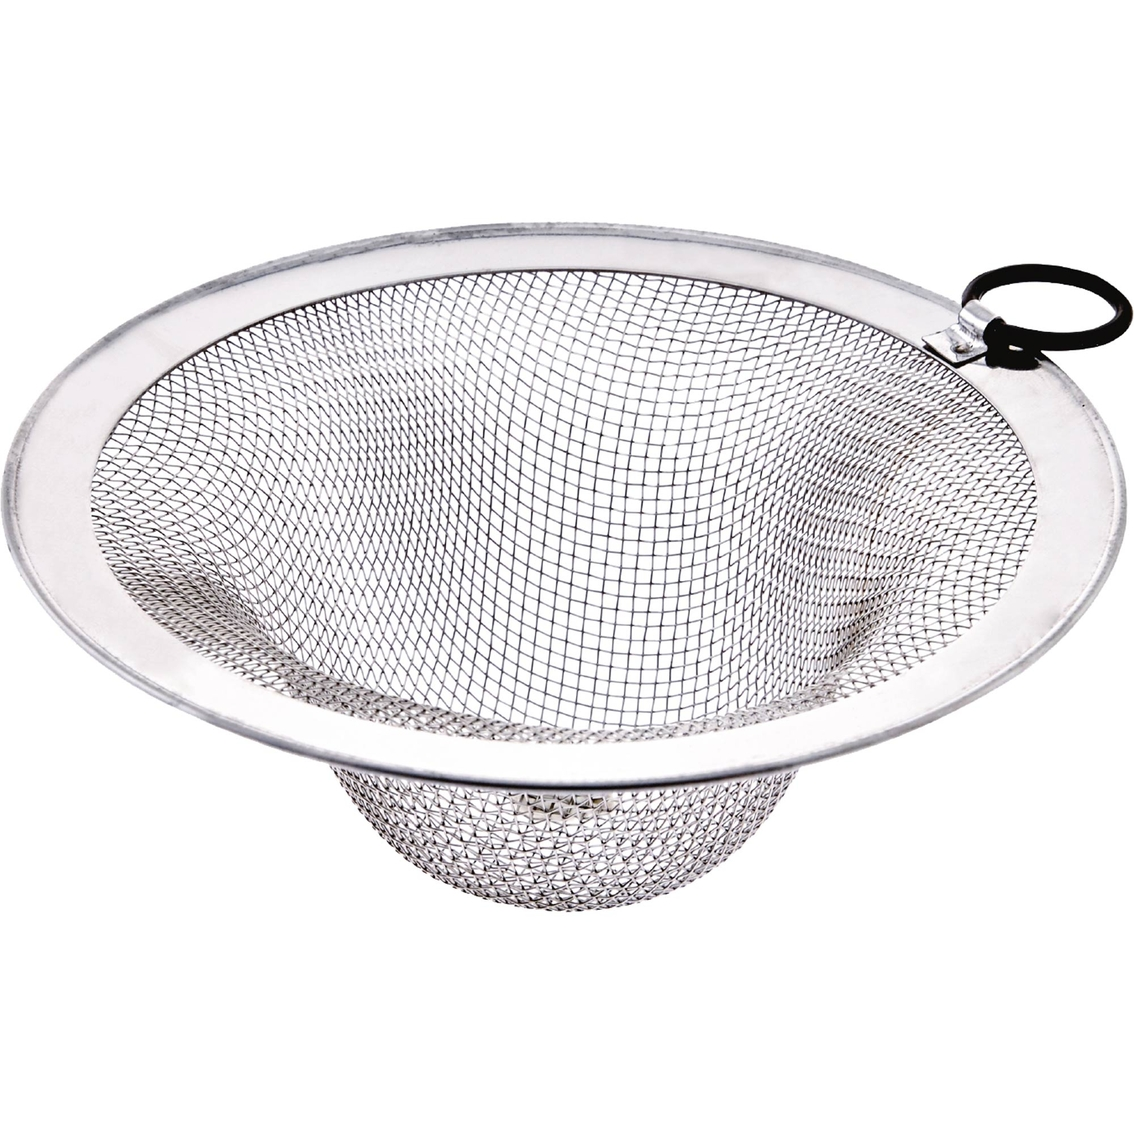 kitchen sink mesh strainer farberware classic mesh sink strainer sink mats amp drains 5858